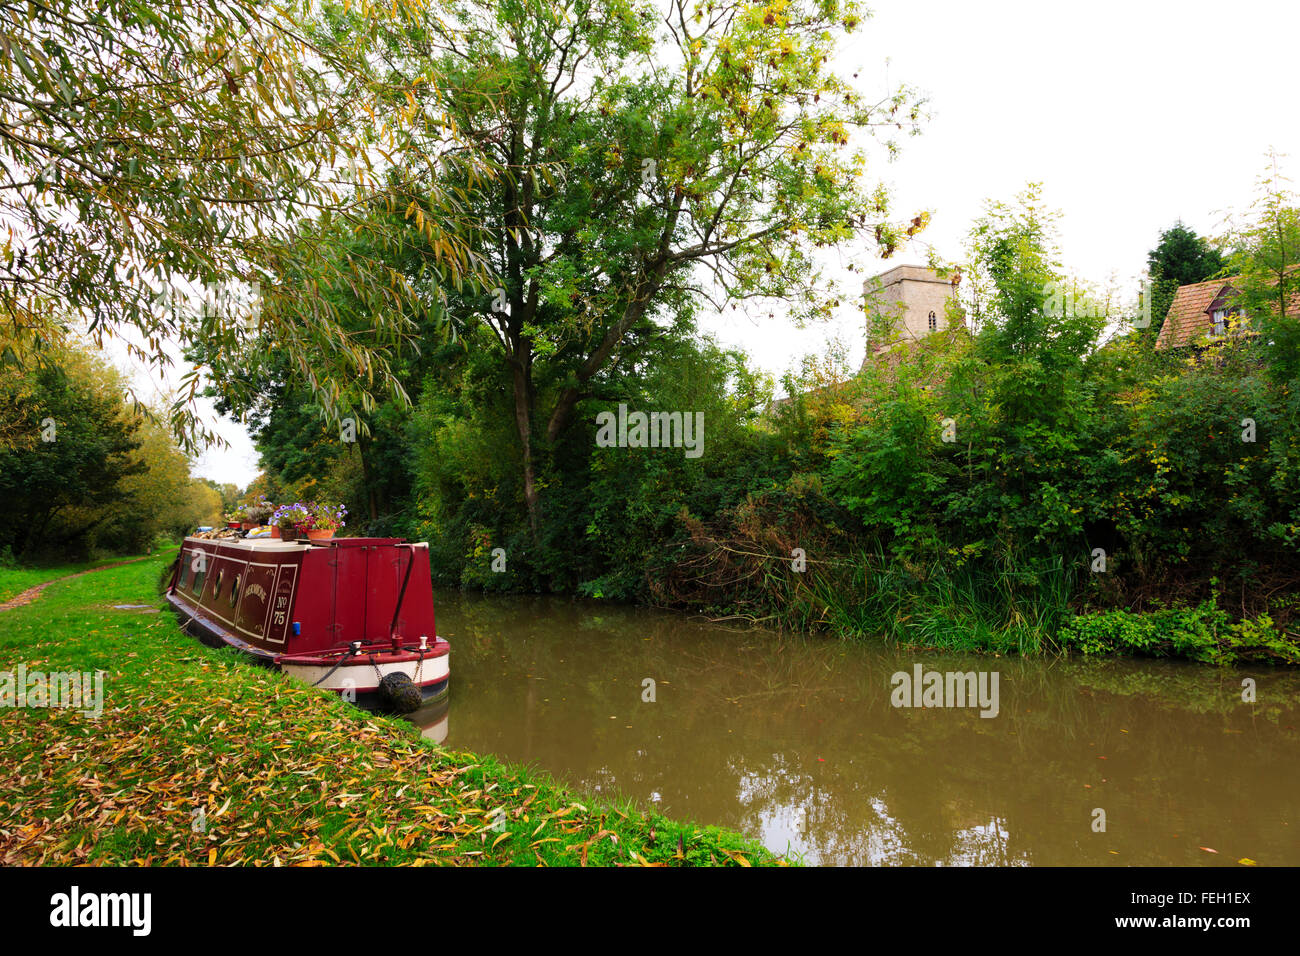 Narrowboat on the Oxford canal at Heyford - Stock Image